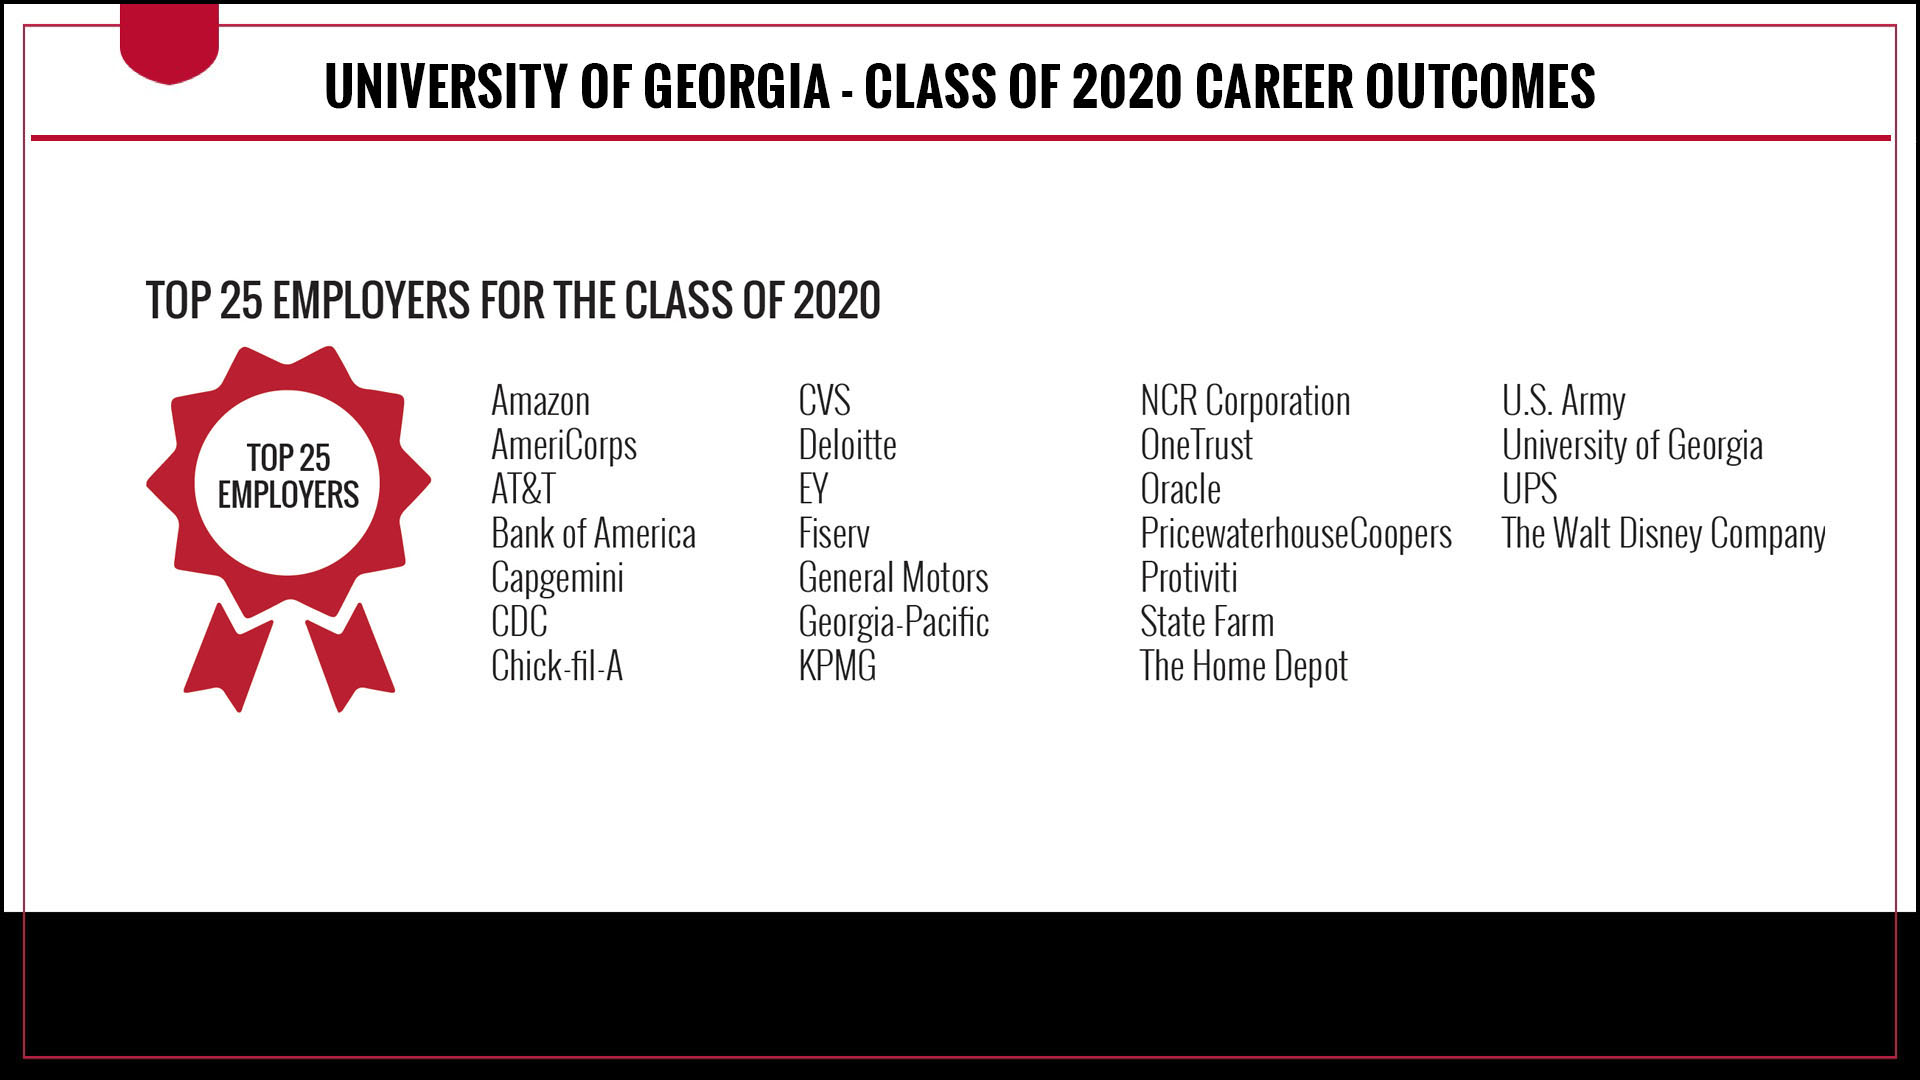 The top employers for Class of 2020 graduates were Amazon, AmeriCorps, AT&T, Bank of America, Capgemini, CDC, Chick-fil-A, CVS, Deloitte, EY, Fiserv, General Motors, Georgia-Pacific, KPMG, NCR Corporation, OneTrust, Oracle, PwC, Protiviti, State Farm, The Home Depot, U.S. Army, University of Georgia, UPS, and The Walt Disney Company